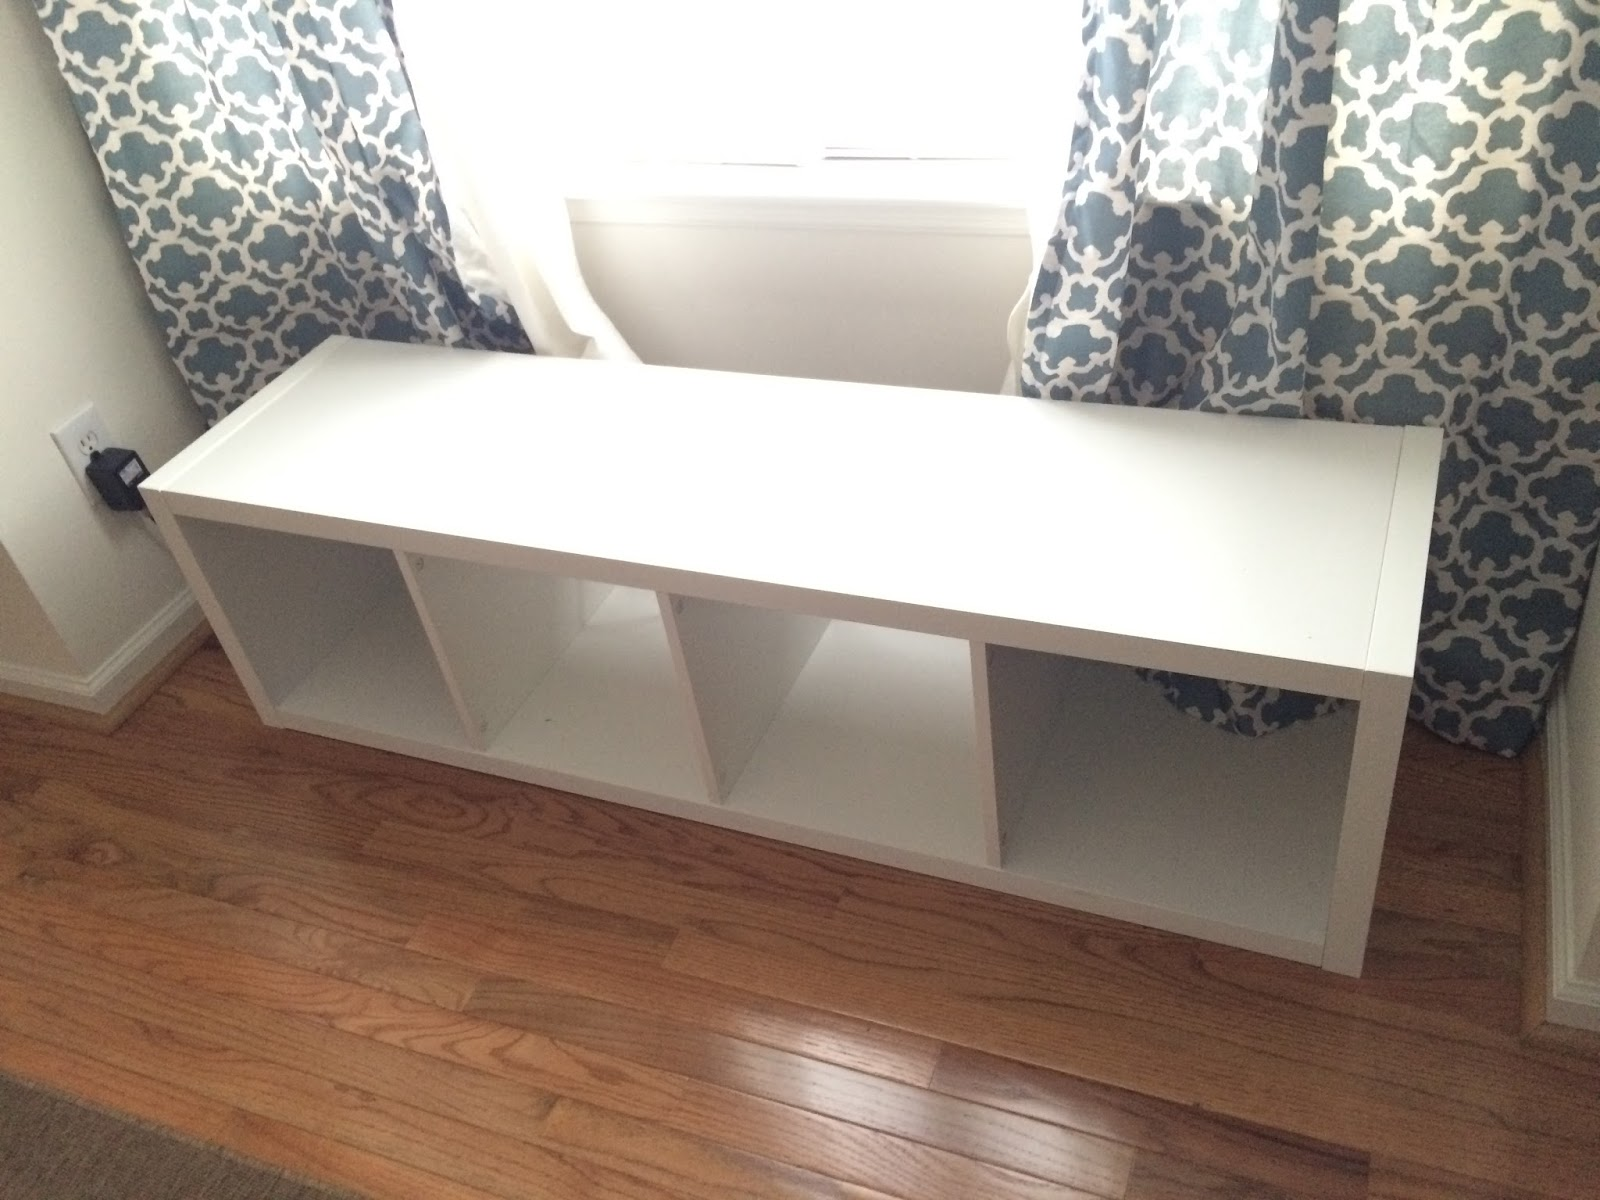 Ikea Storage Bench Also With Hall Storage Bench With Baskets Also With Bench Seats With Storage For The Home Also With Front Door Storage Bench Storage Bench Organization System Is Part